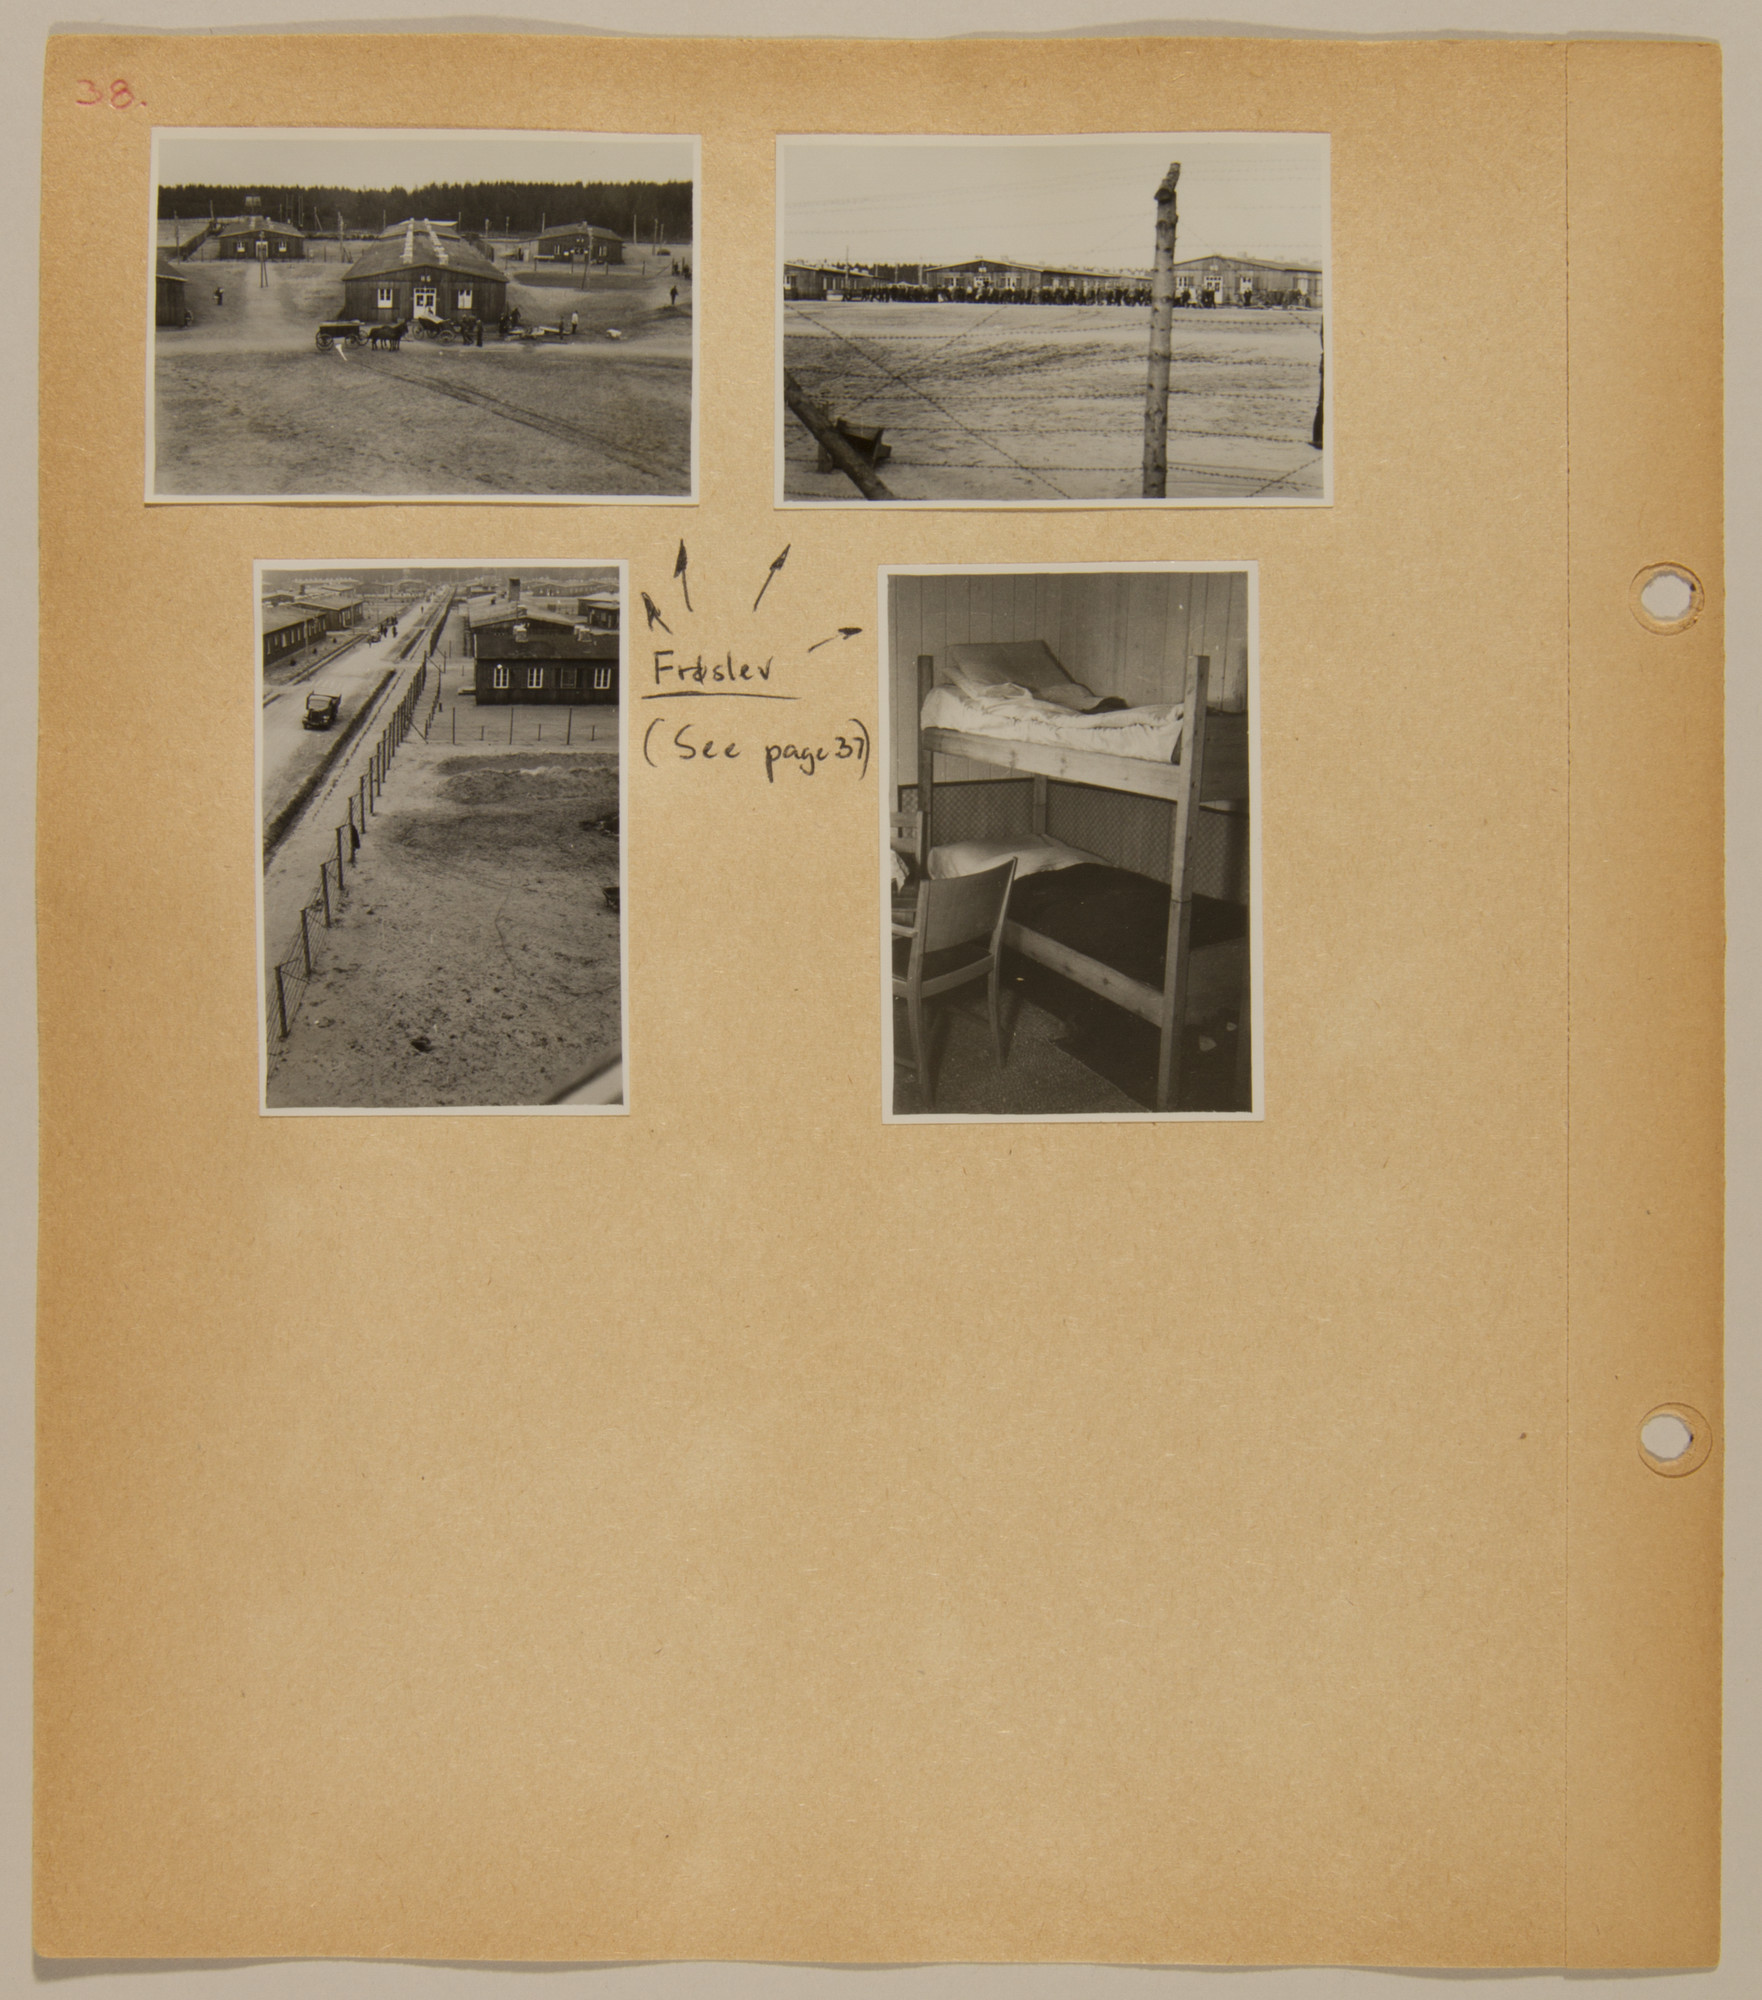 Page from volume five of a set of scrapbooks compiled by Bjorn Sibbern, a Danish policeman and resistance member, documenting the German occupation of Denmark.  This page contains photographs of the release of political prisoners from a camp in Froslev, Southern Jutland.